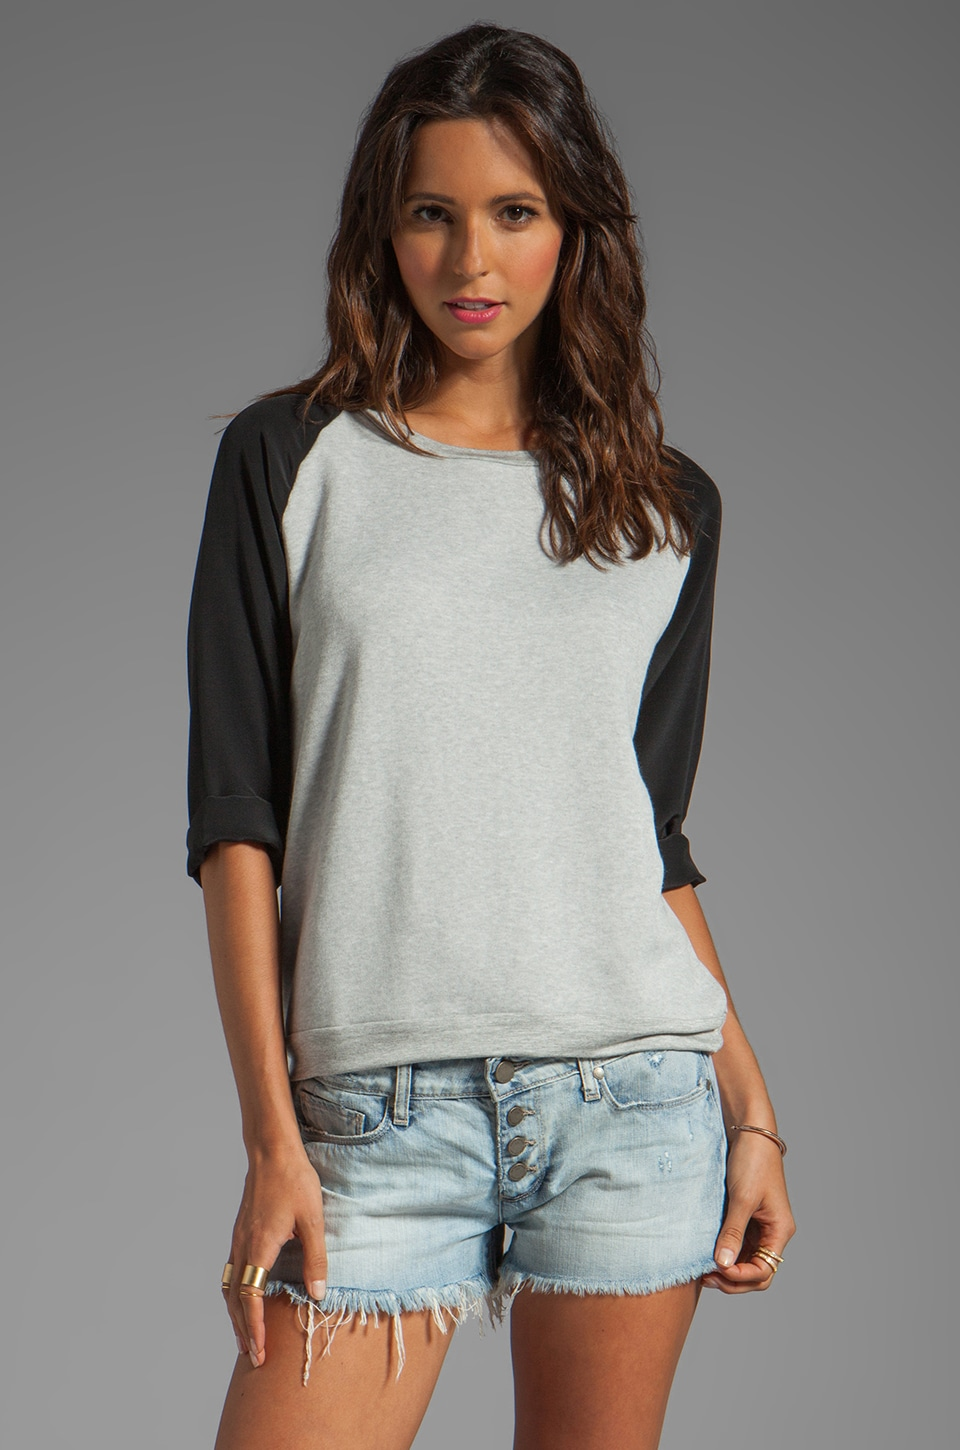 LNA Hutton Sweatshirt in Heather Grey/Black